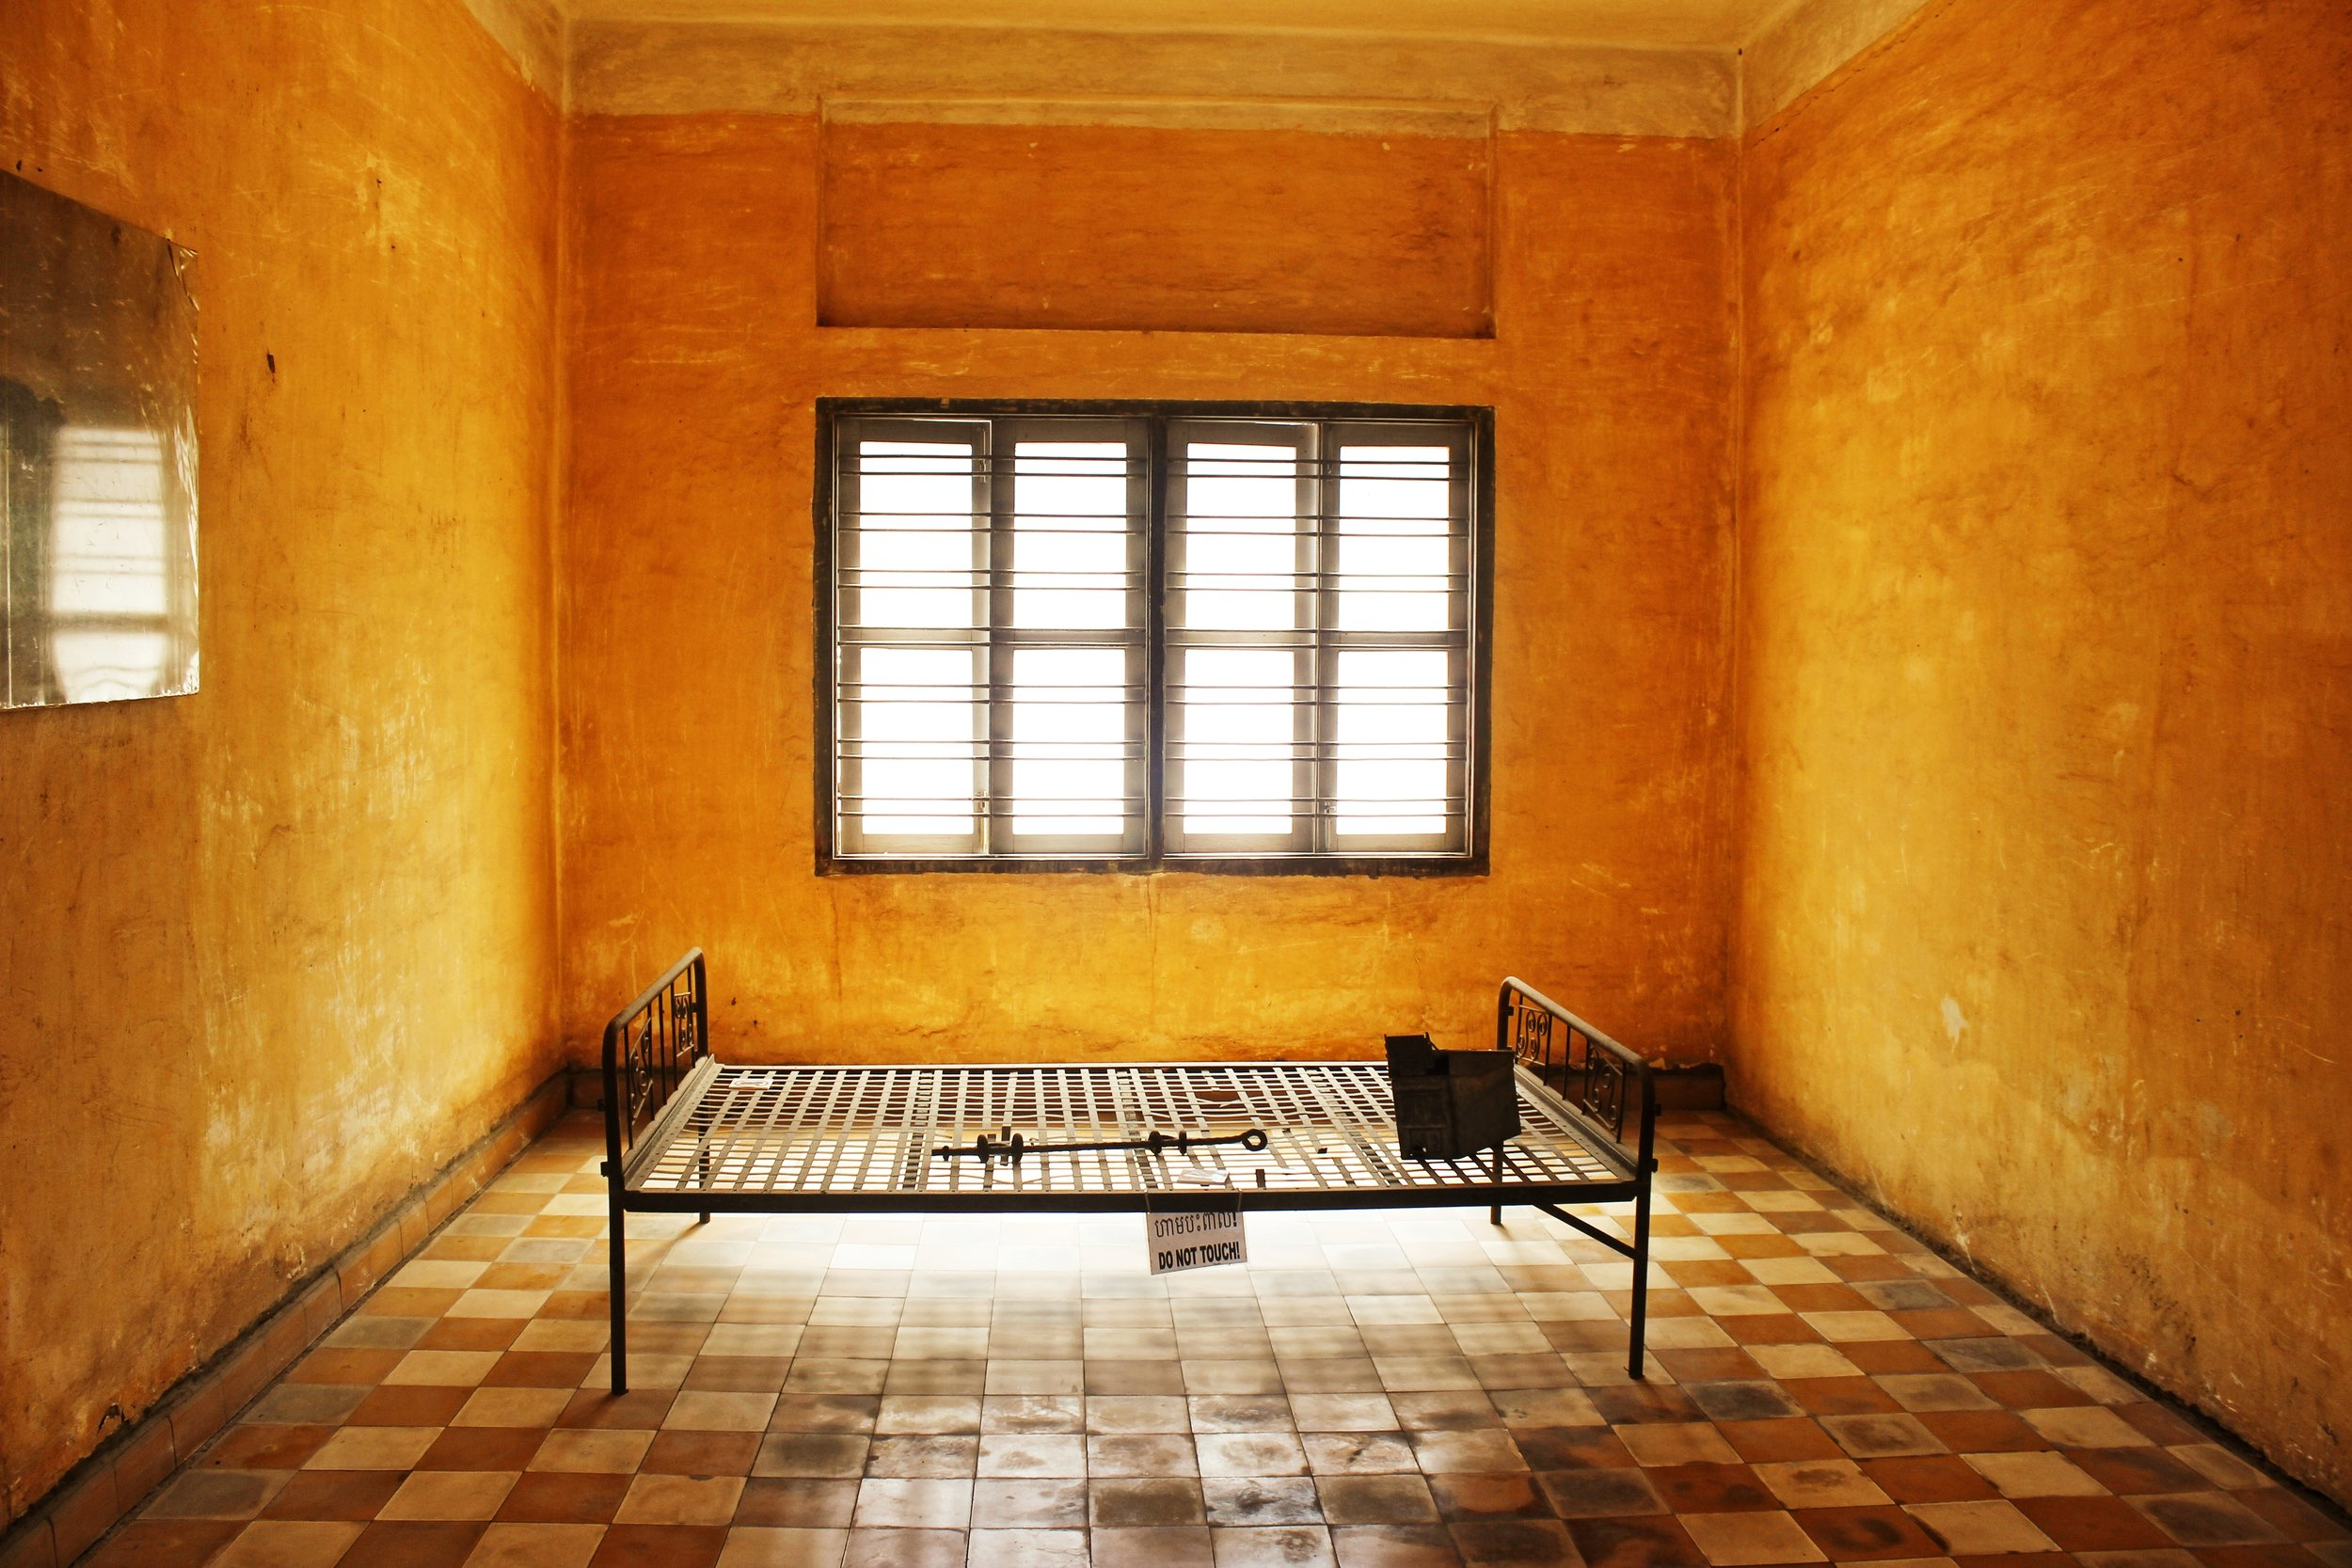 Room in the S-21 prison where special prisoners were held.